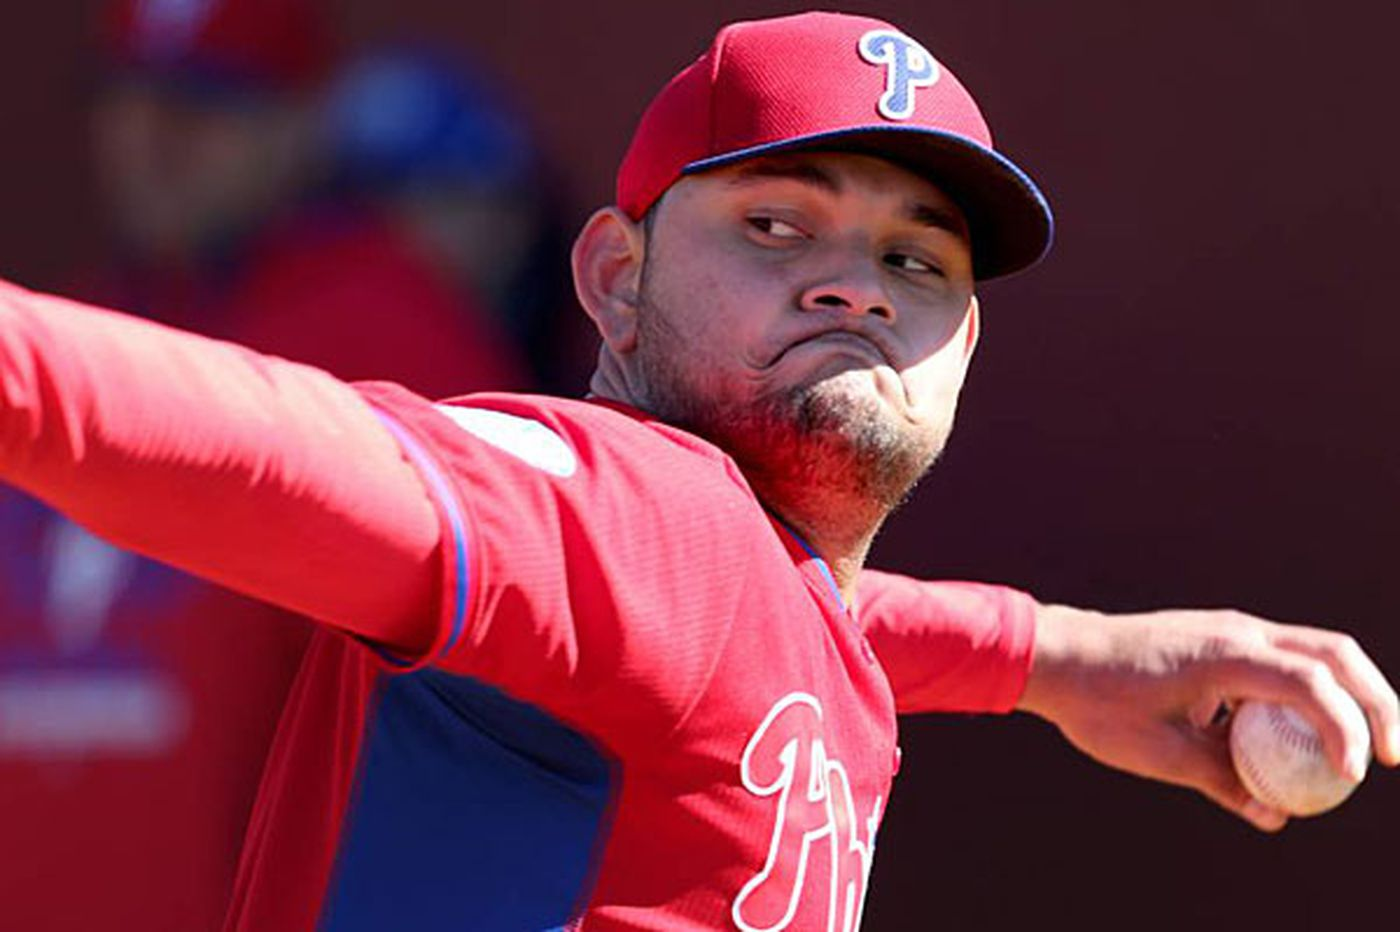 Phillies can't rule out Araujo for bullpen role